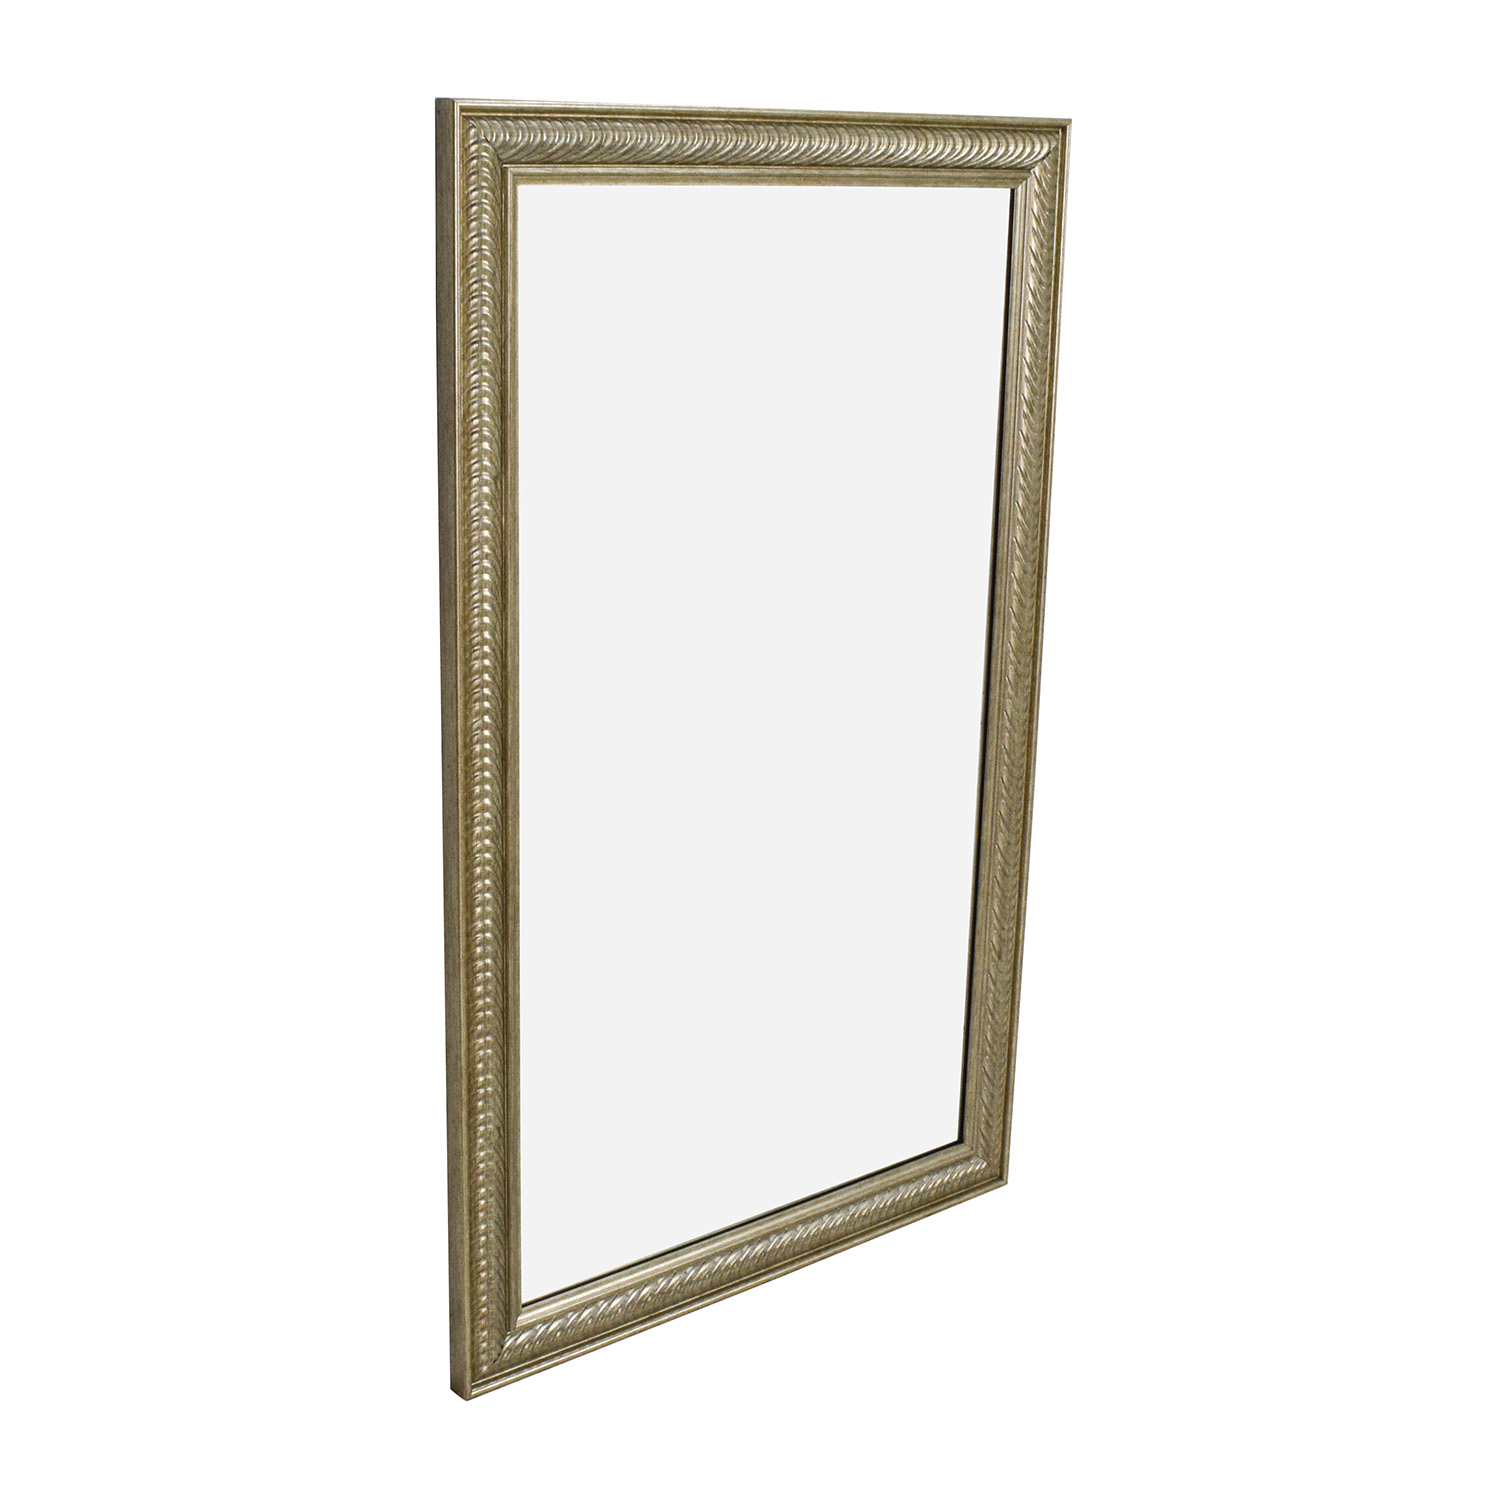 Wall Mirror Decor 44 Off Wave Collection Wave Collection Silver Framed